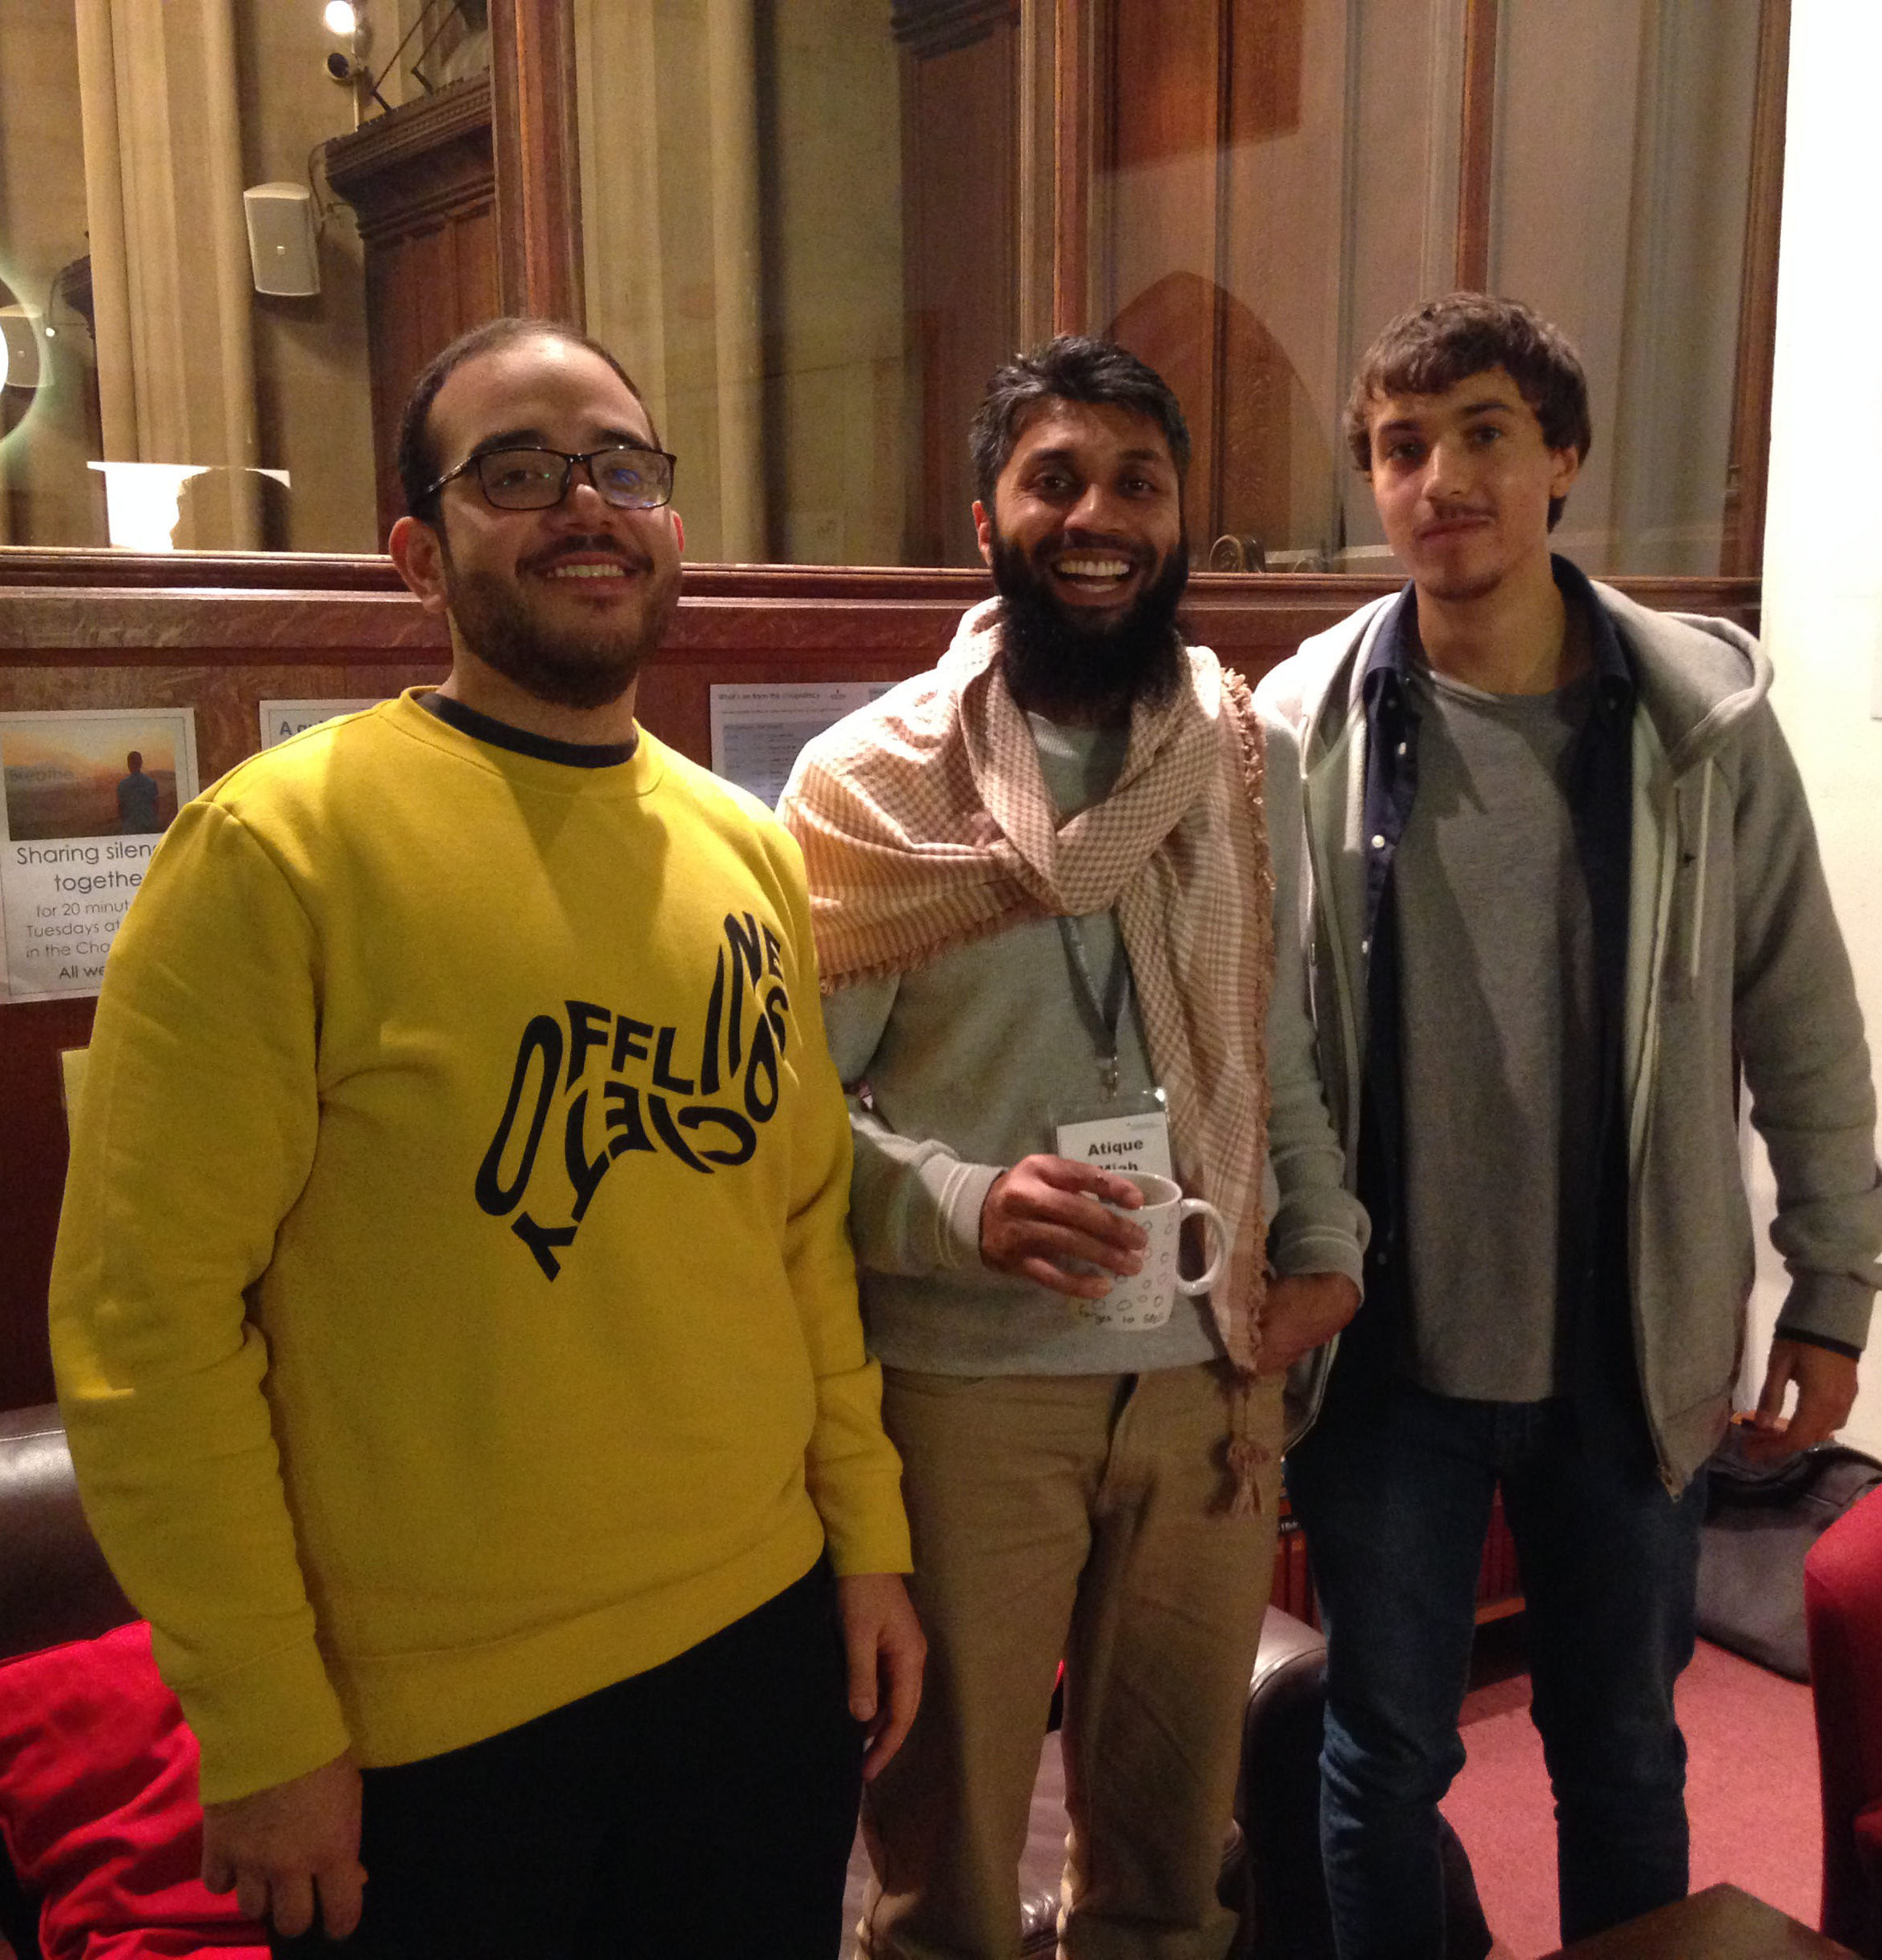 Yousef, Chaplain and friend